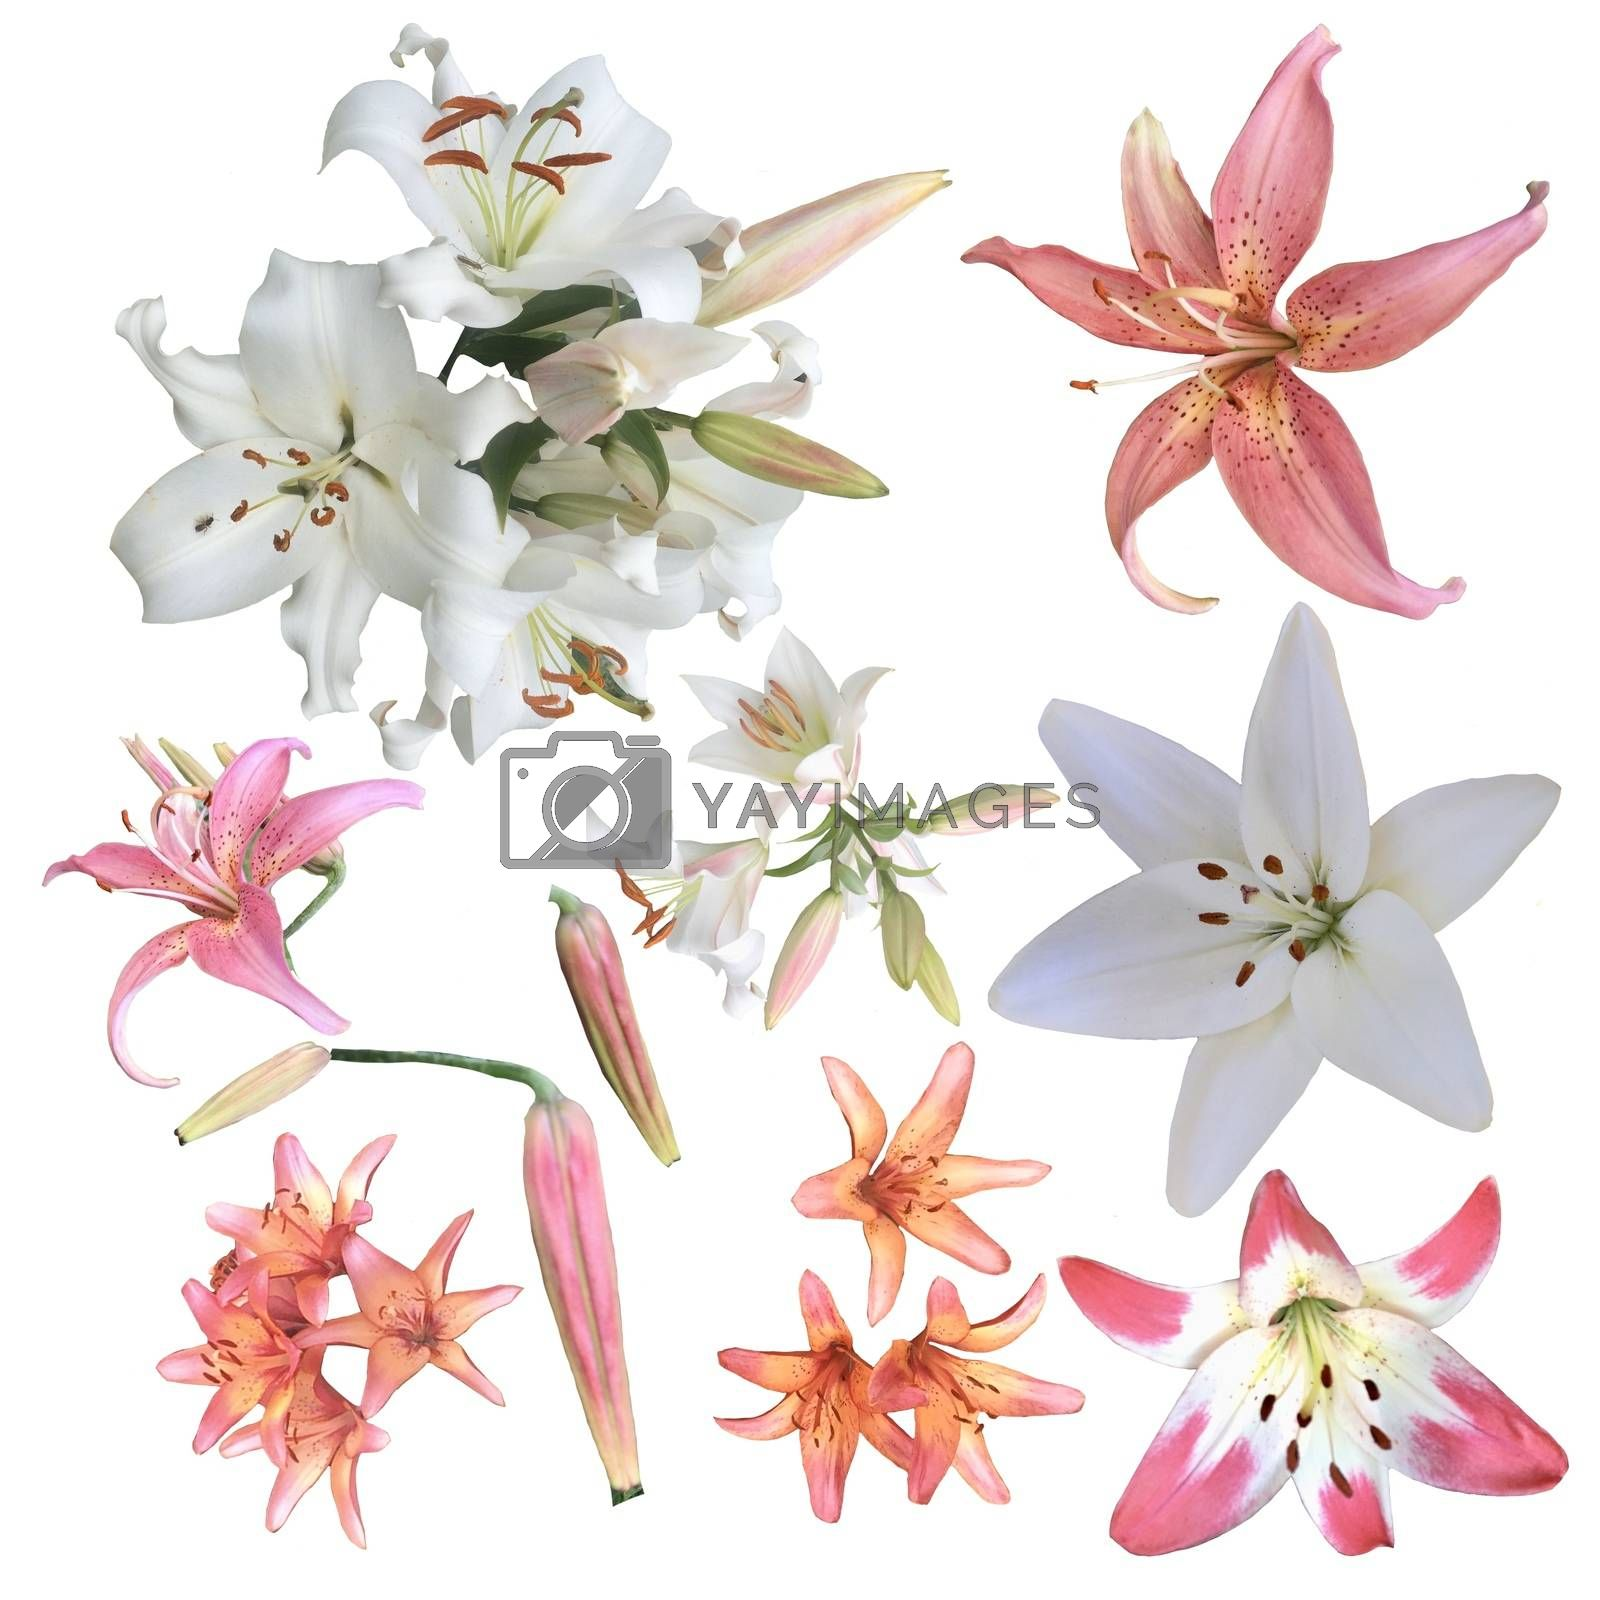 Set of fresh lileis flowers isolated on white background. Collection of white and pink lily decoration element.